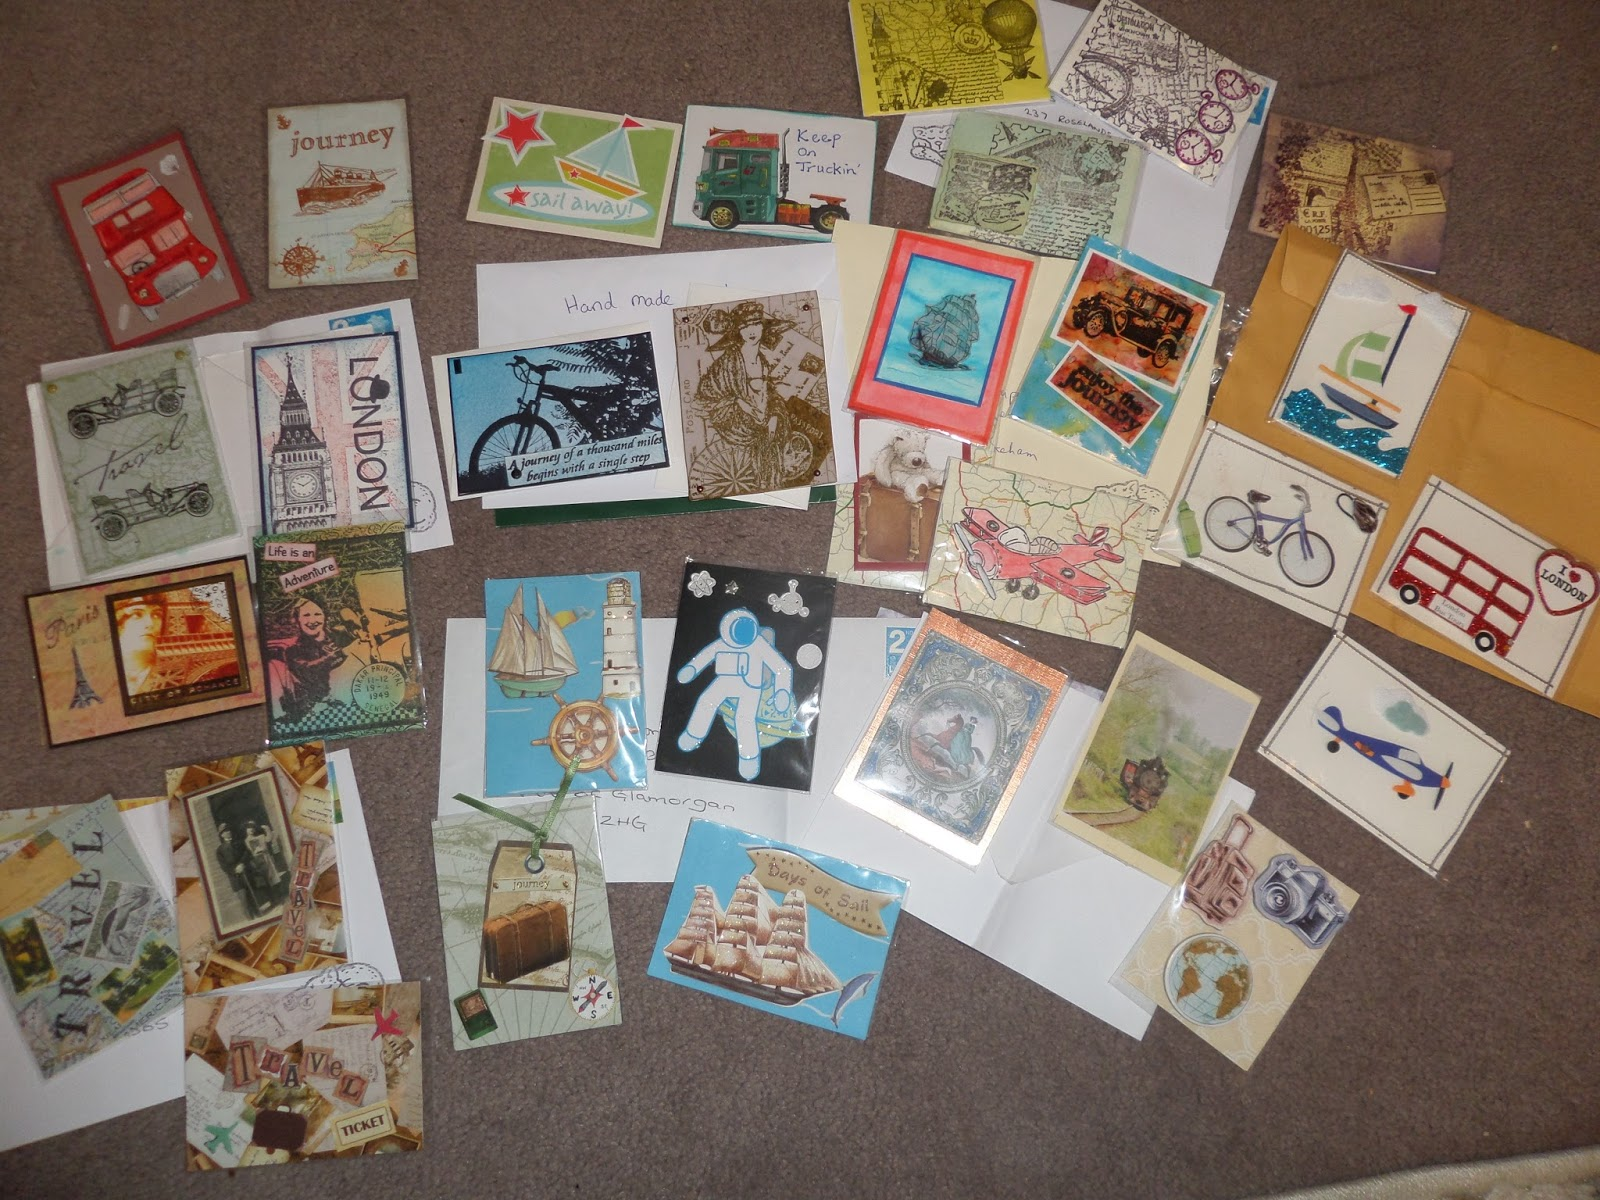 Alizabethy - Card Making Addict!: This months ATC Travel Swaps